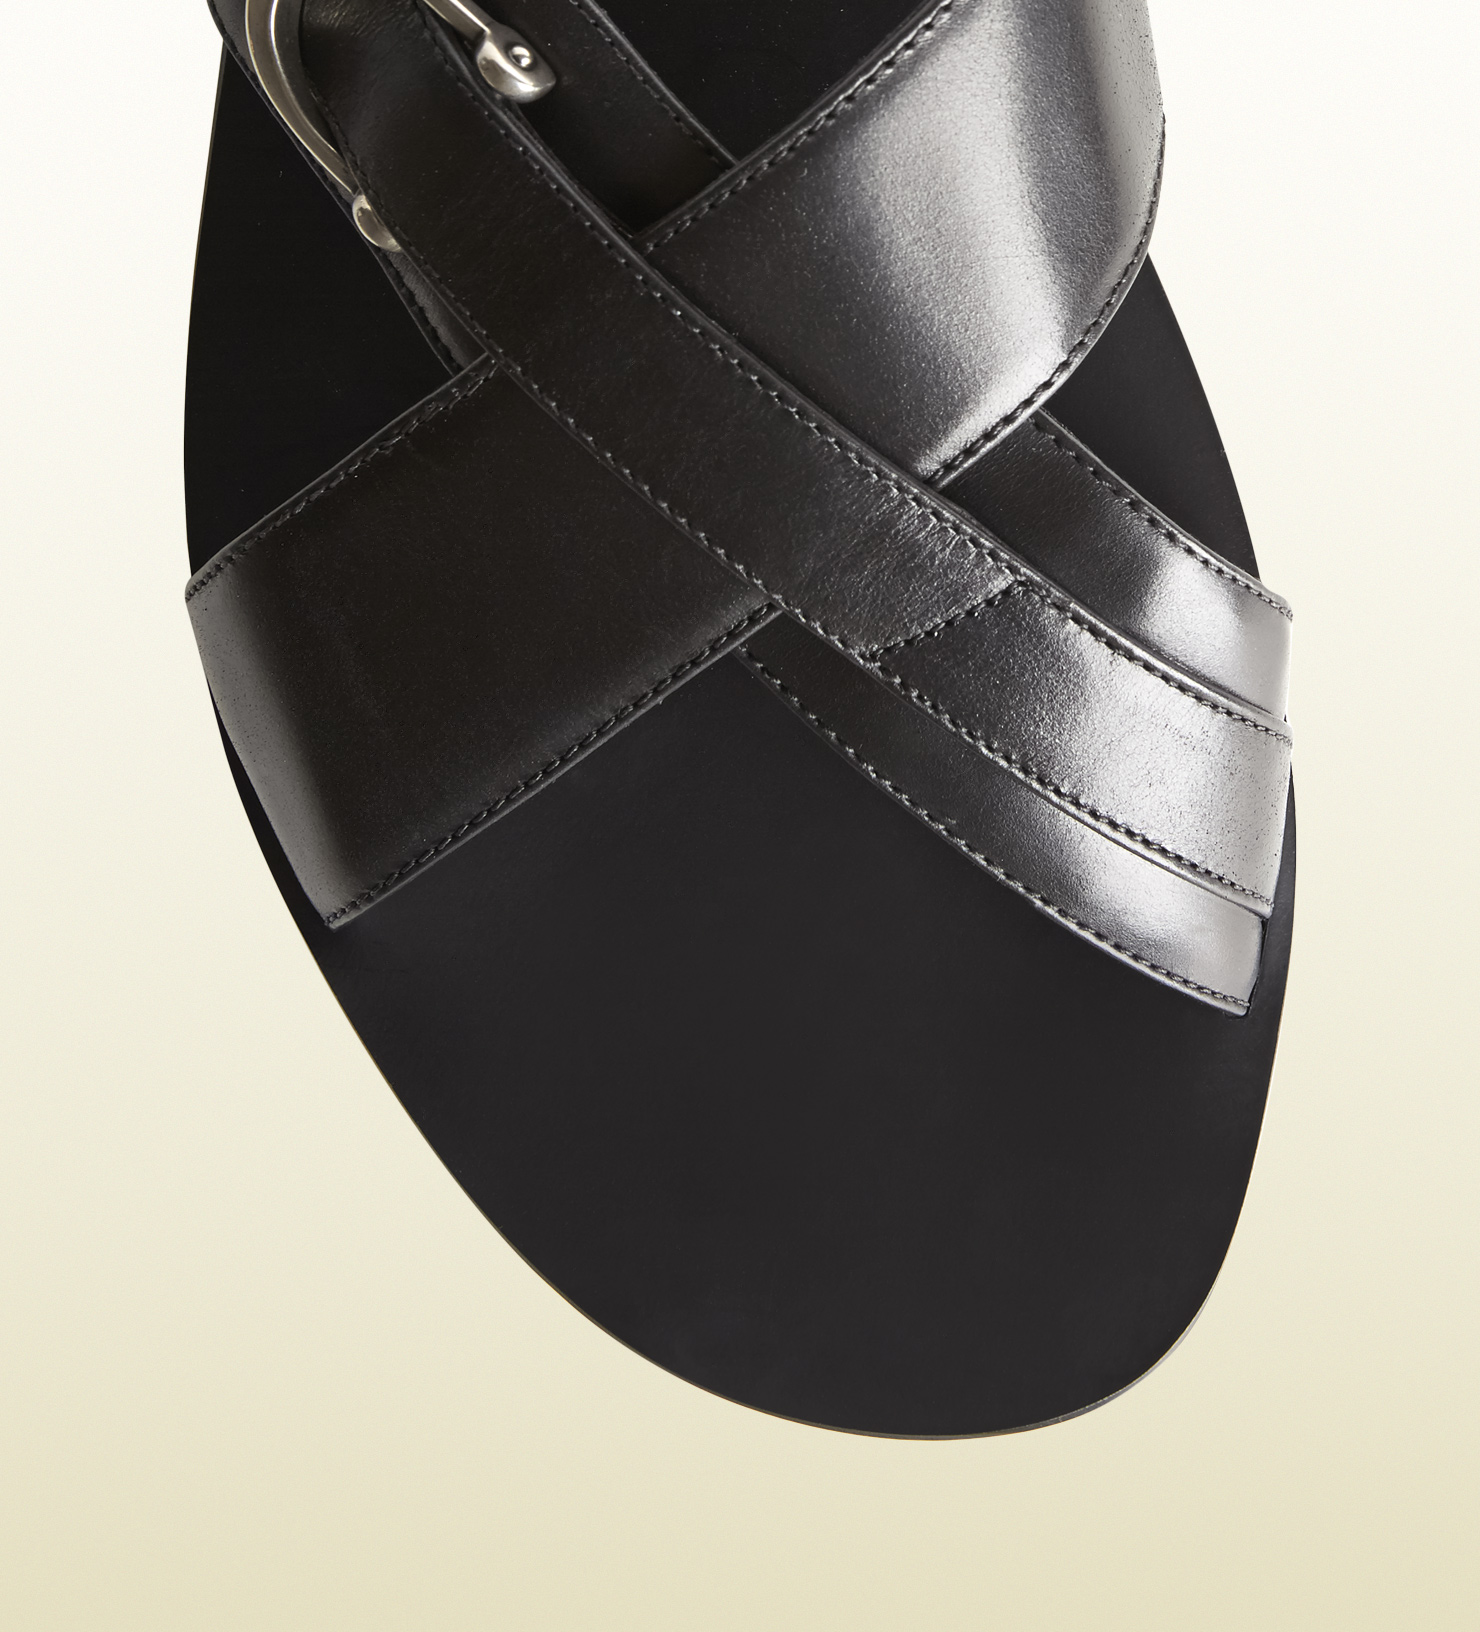 Lyst - Gucci Black Leather Crisscross Slide Sandal in ...